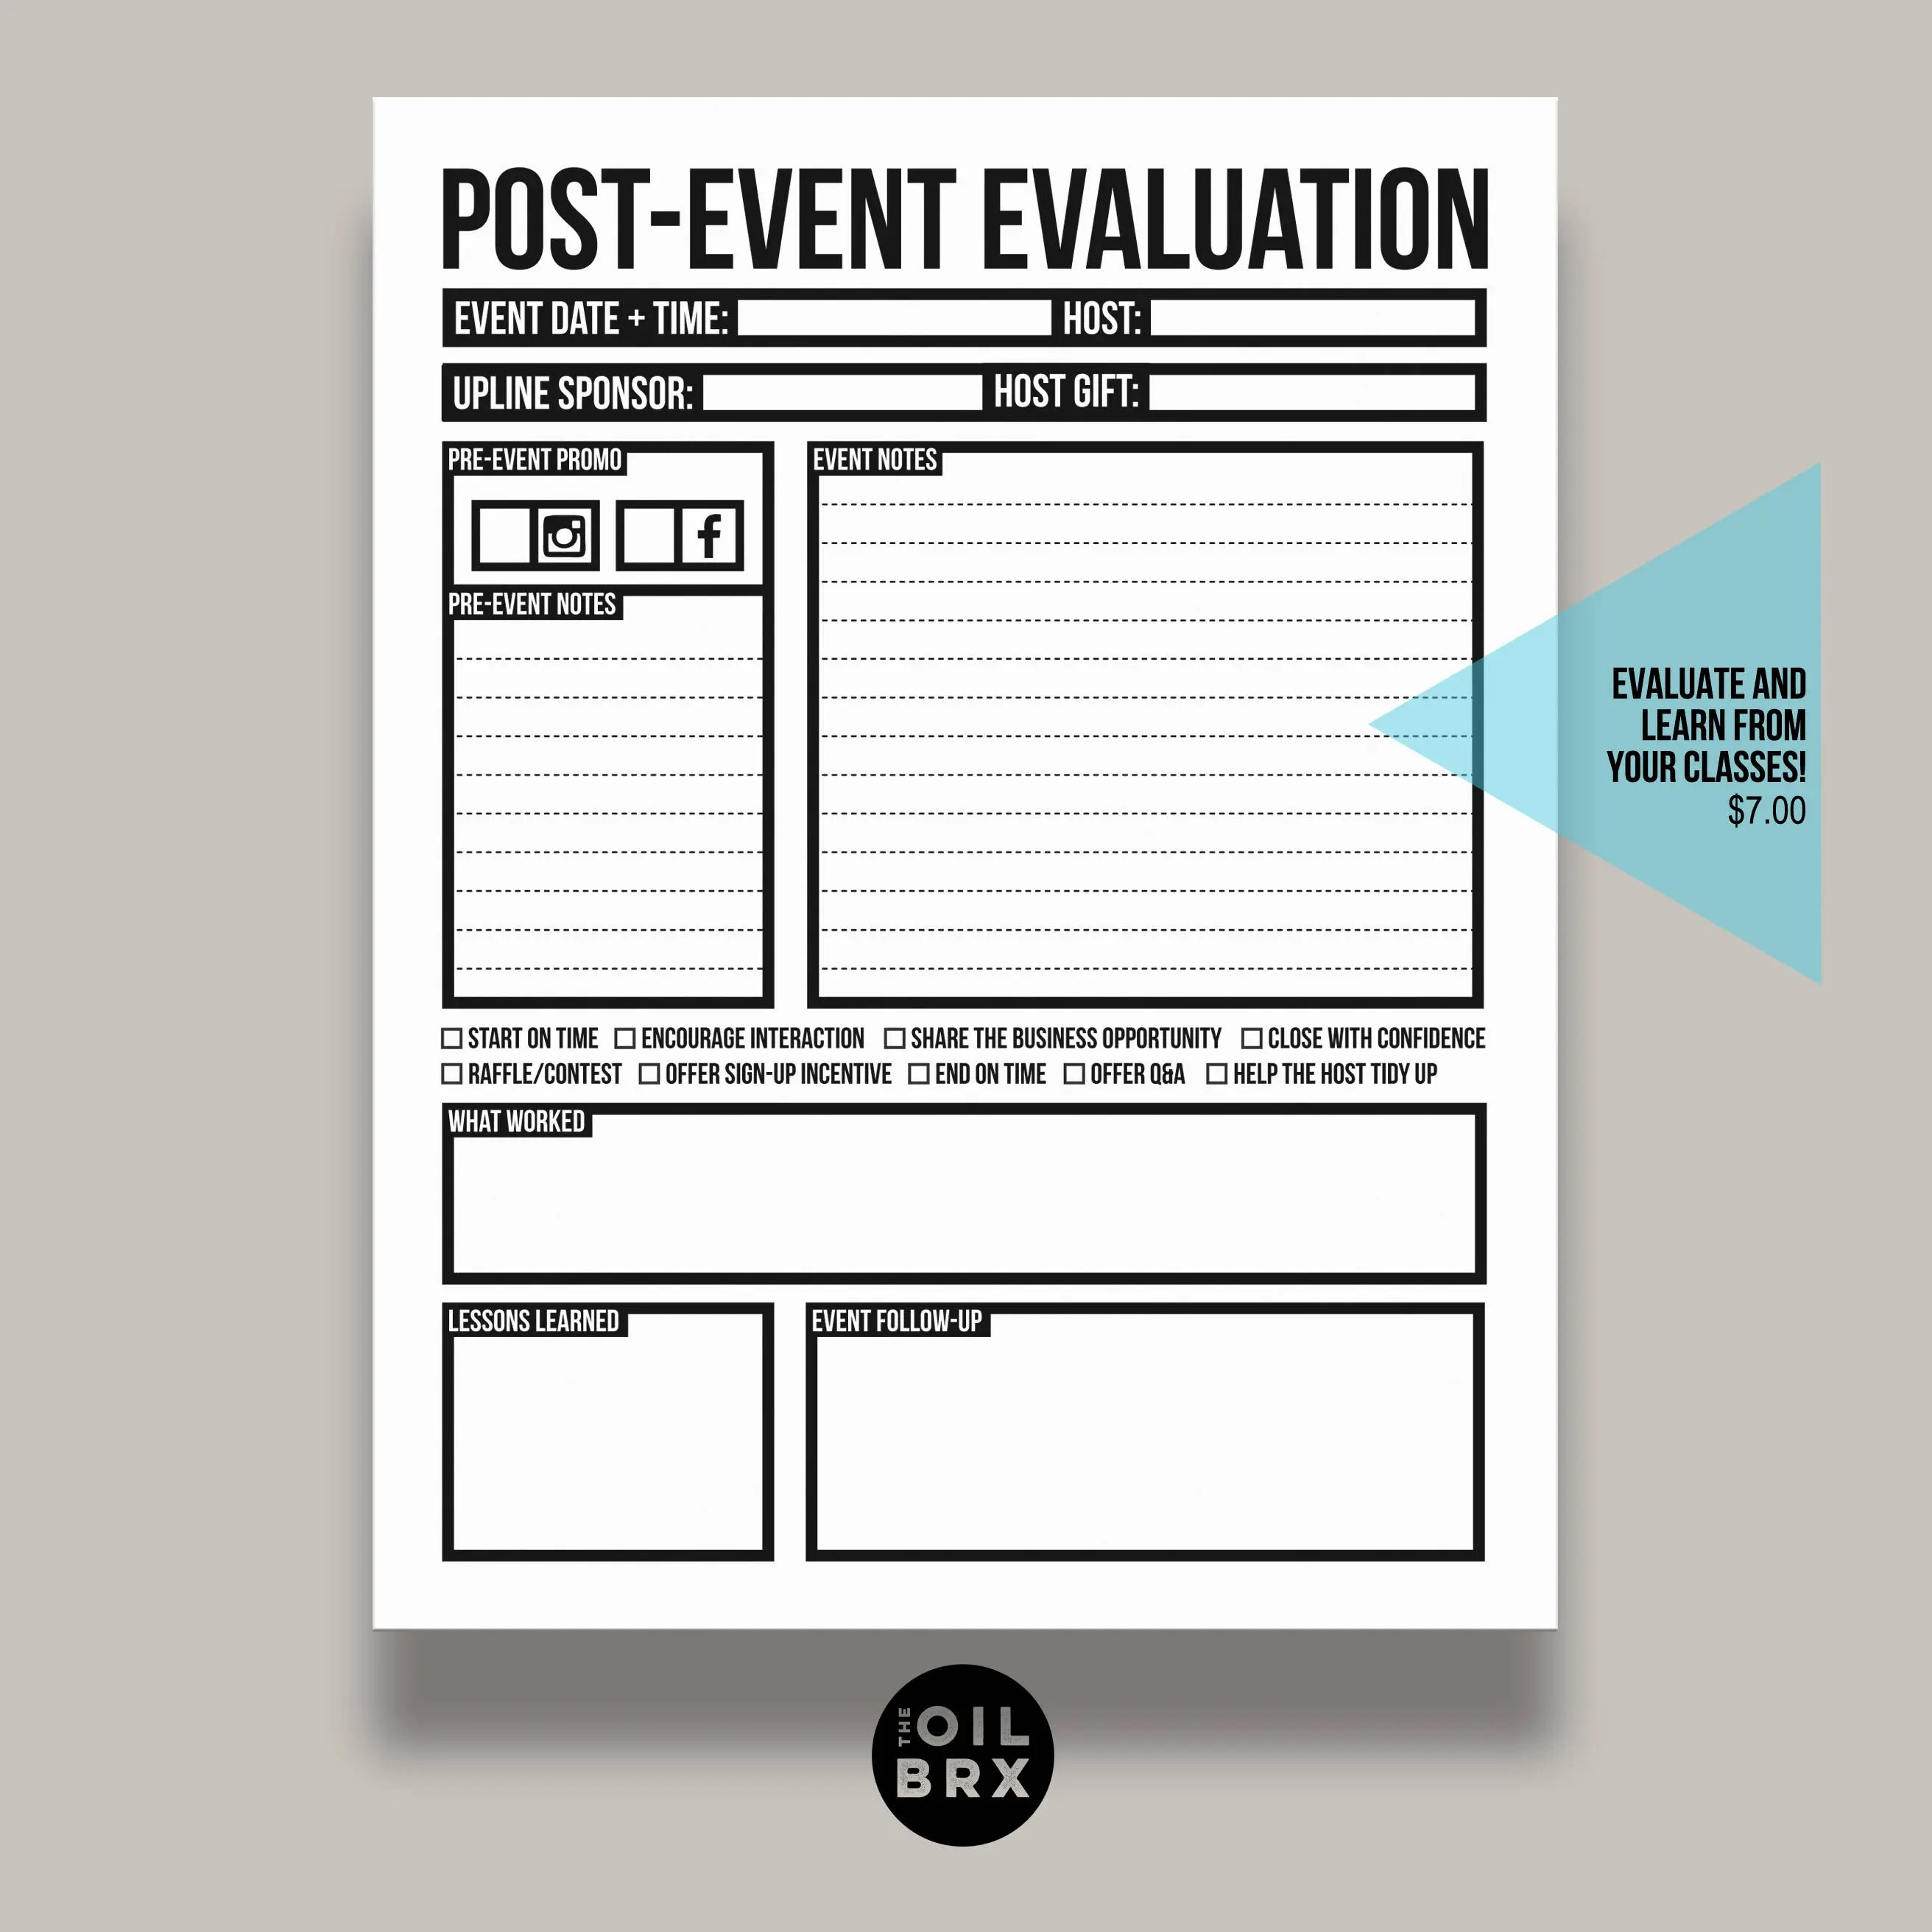 Post-Event Evaluation Form for Home Classes or Parties Etsy